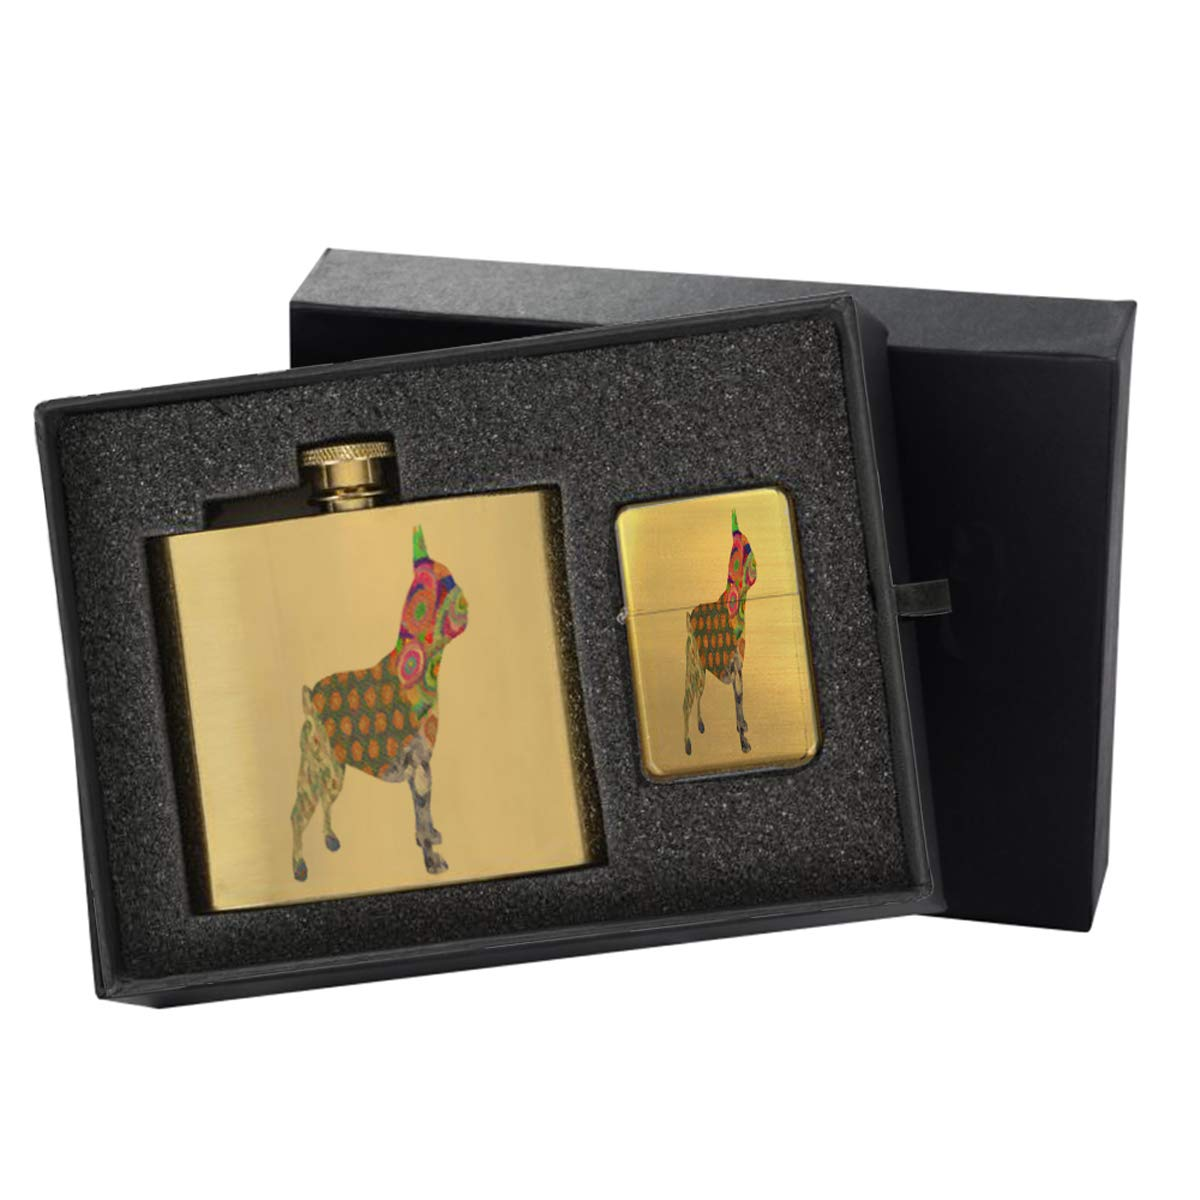 French Bulldog Pattern - Gold Lighter and Pocket Hip Liquor Flask Survival Camping Gift Box Set